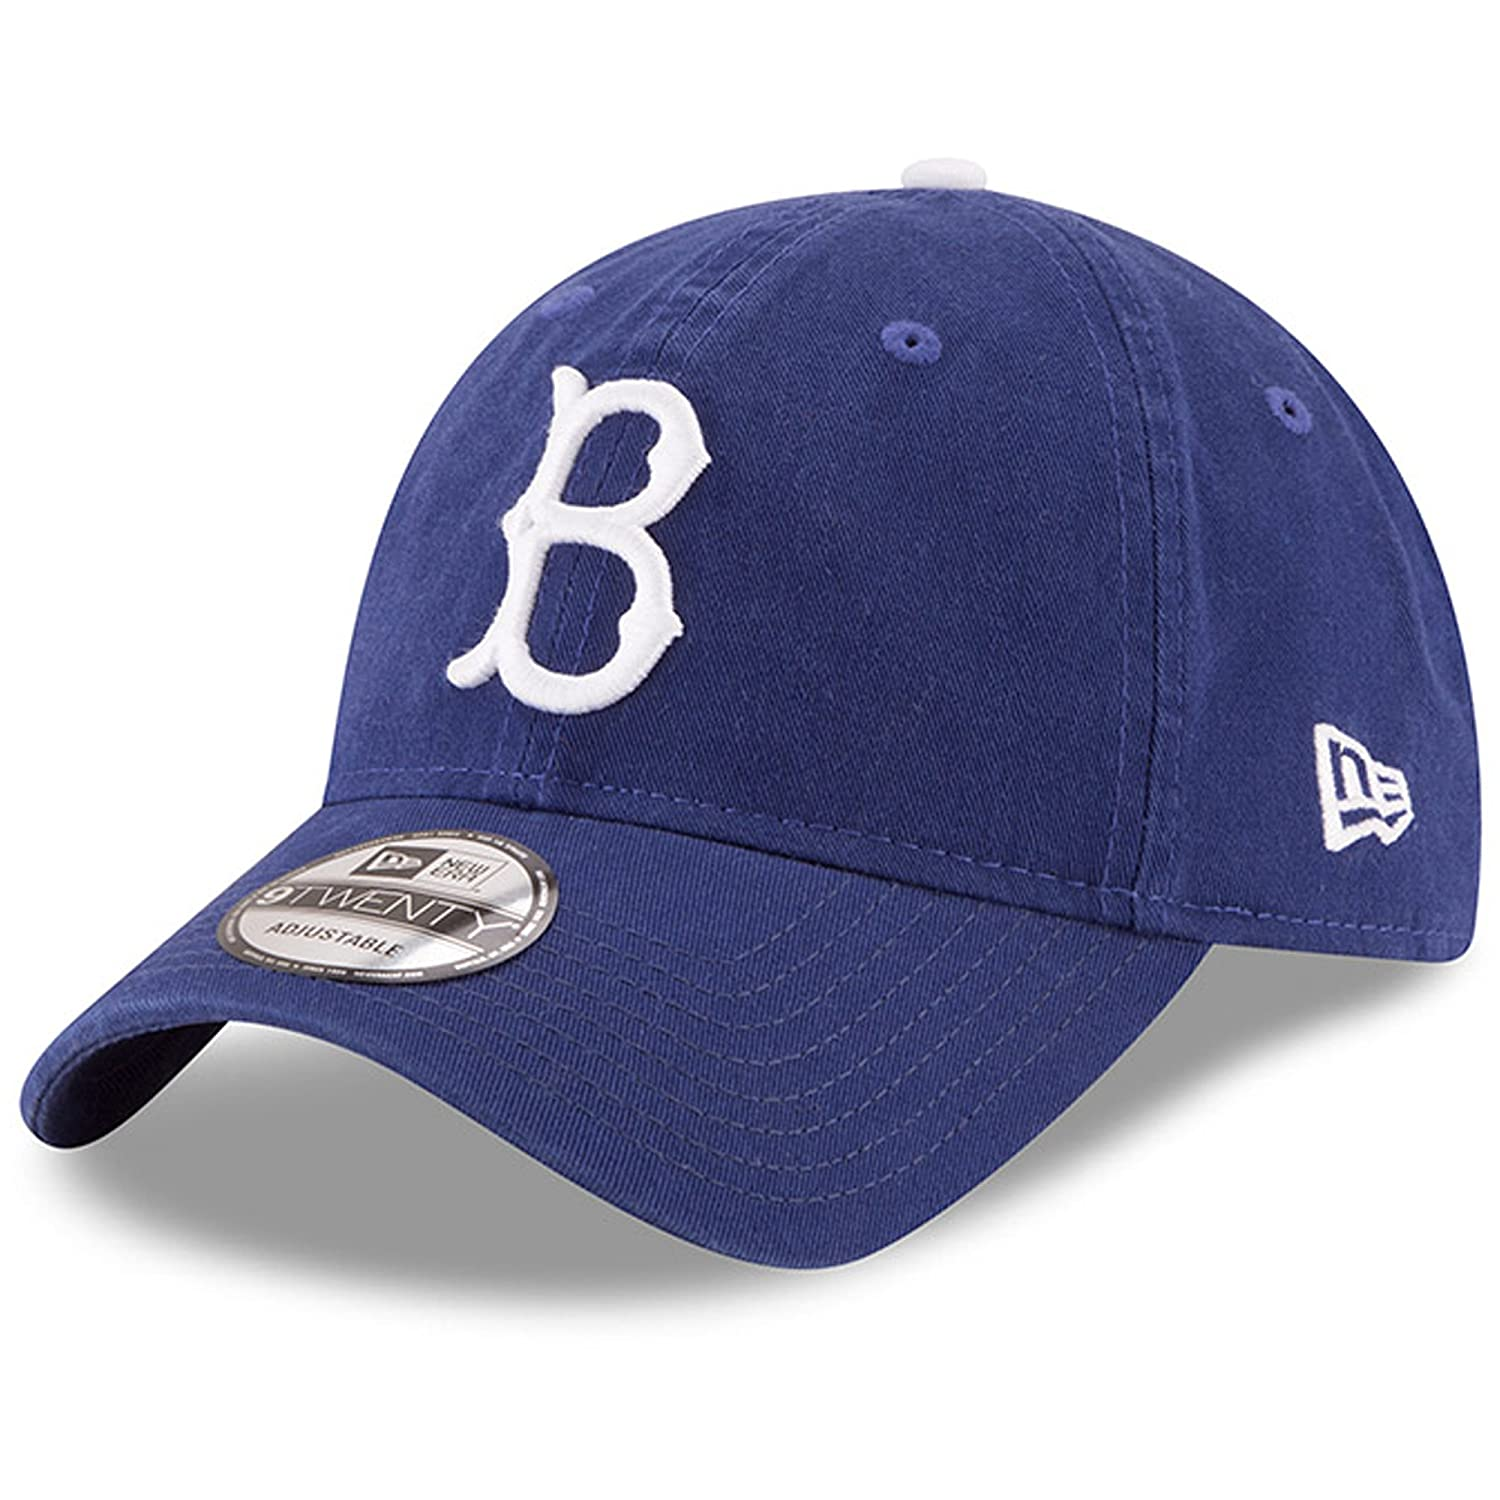 Brooklyn Dodgers New Era Cooperstown Collection Core Classic Replica  9TWENTY Adjustable Hat Royal 3778663d17fc